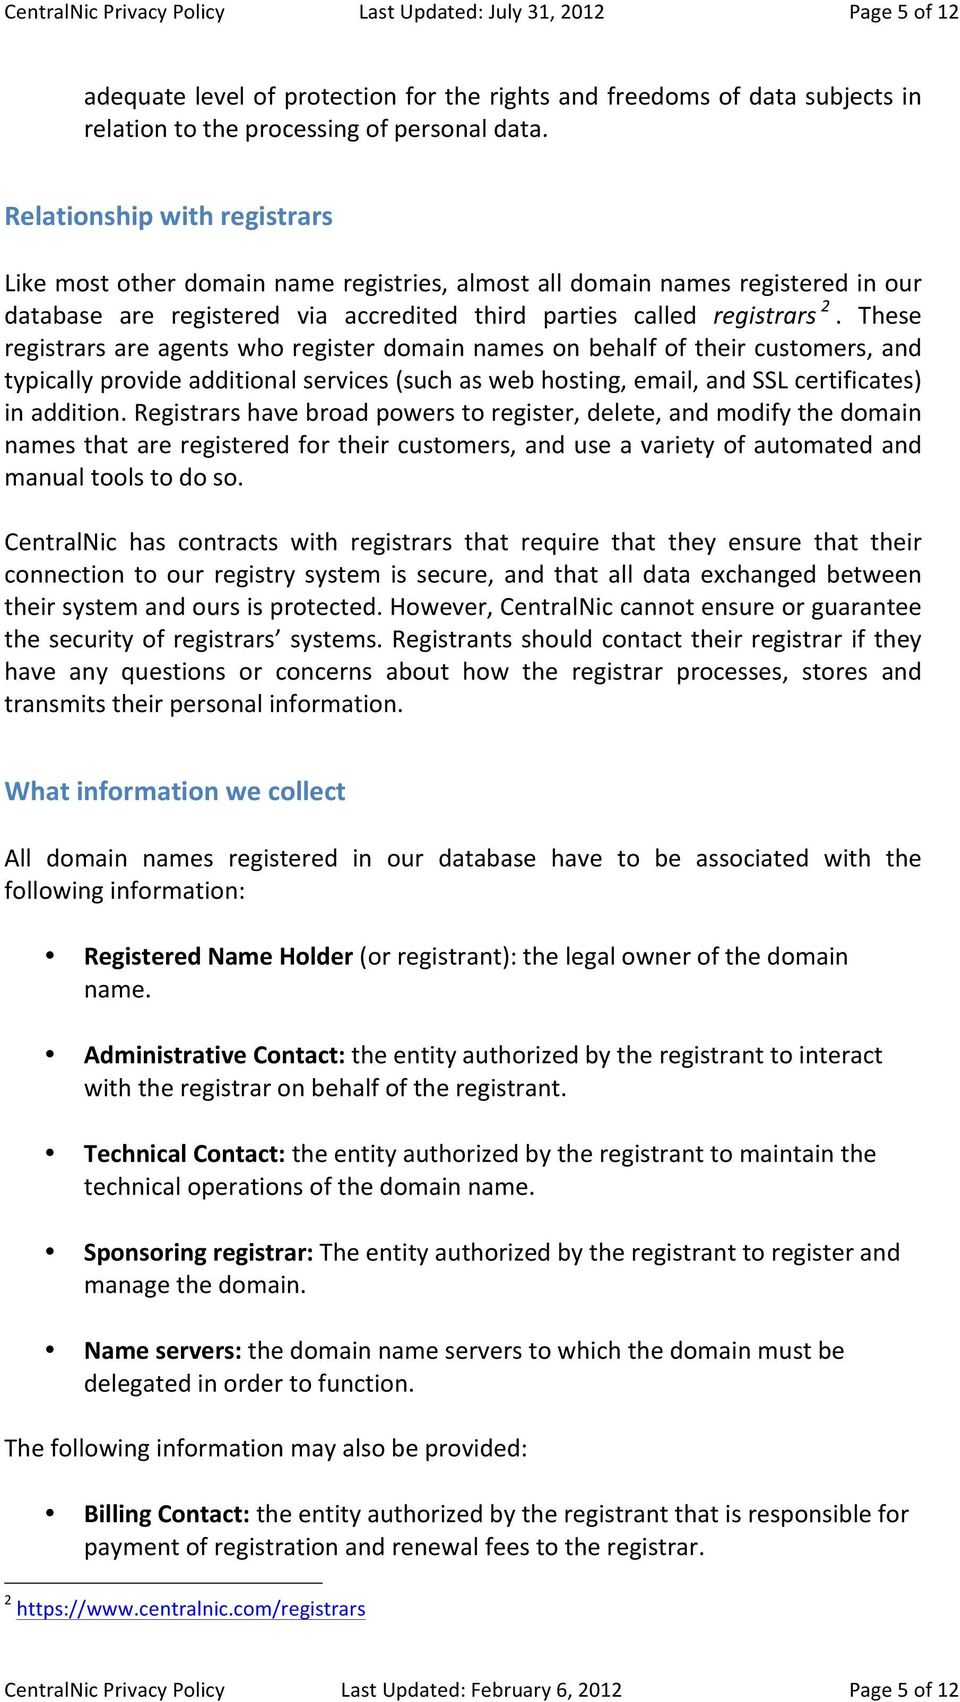 These registrars are agents who register domain names on behalf of their customers, and typically provide additional services (such as web hosting, email, and SSL certificates) in addition.